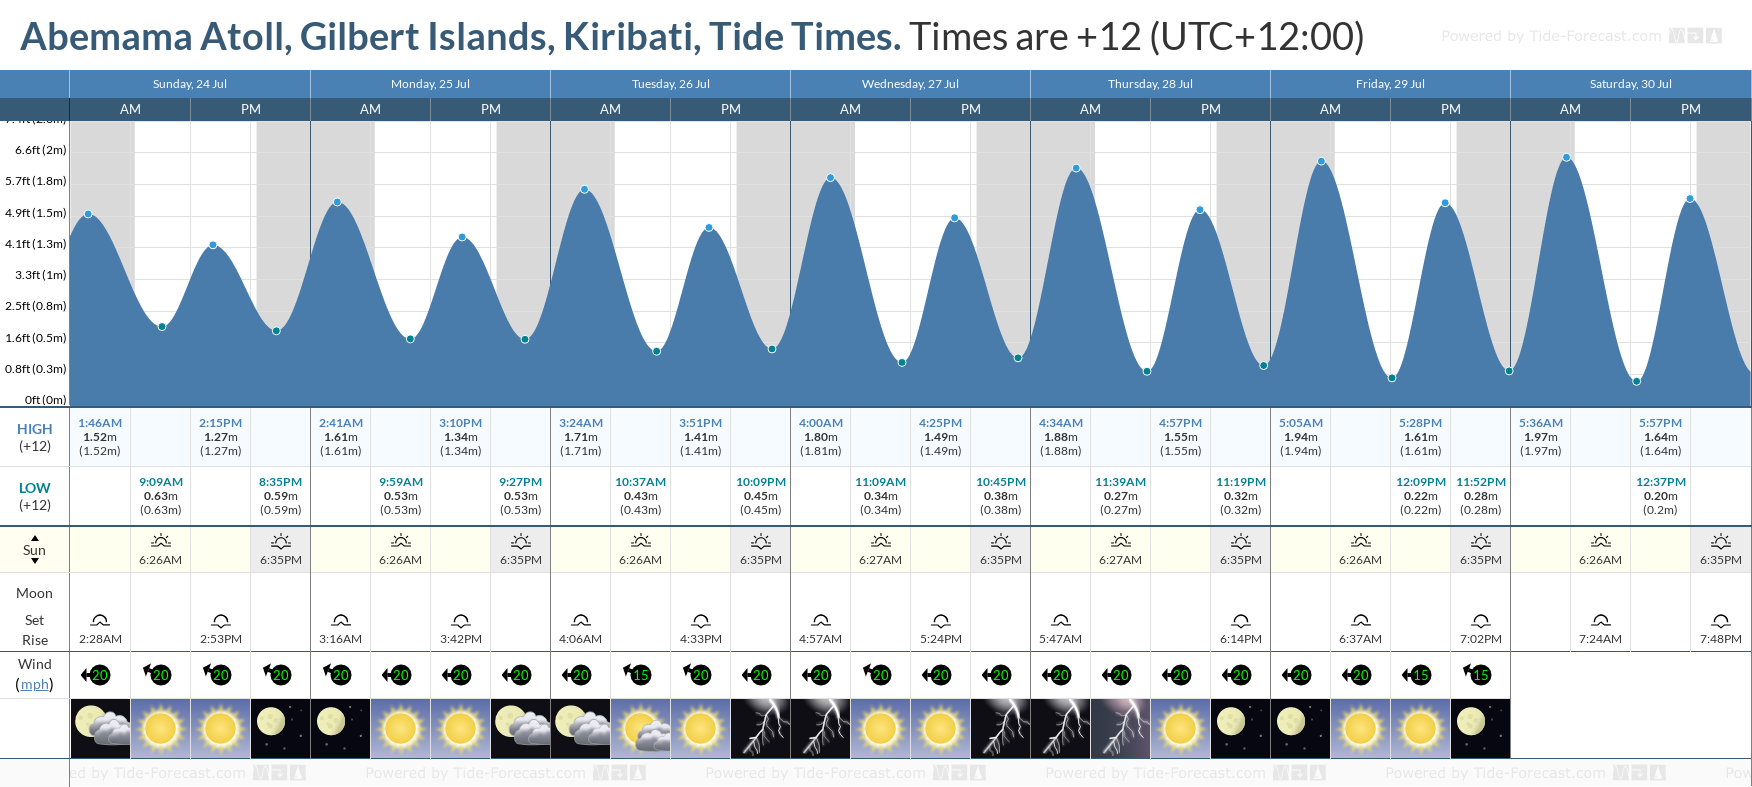 Abemama Atoll, Gilbert Islands, Kiribati Tide Chart including high and low tide tide times for the next 7 days